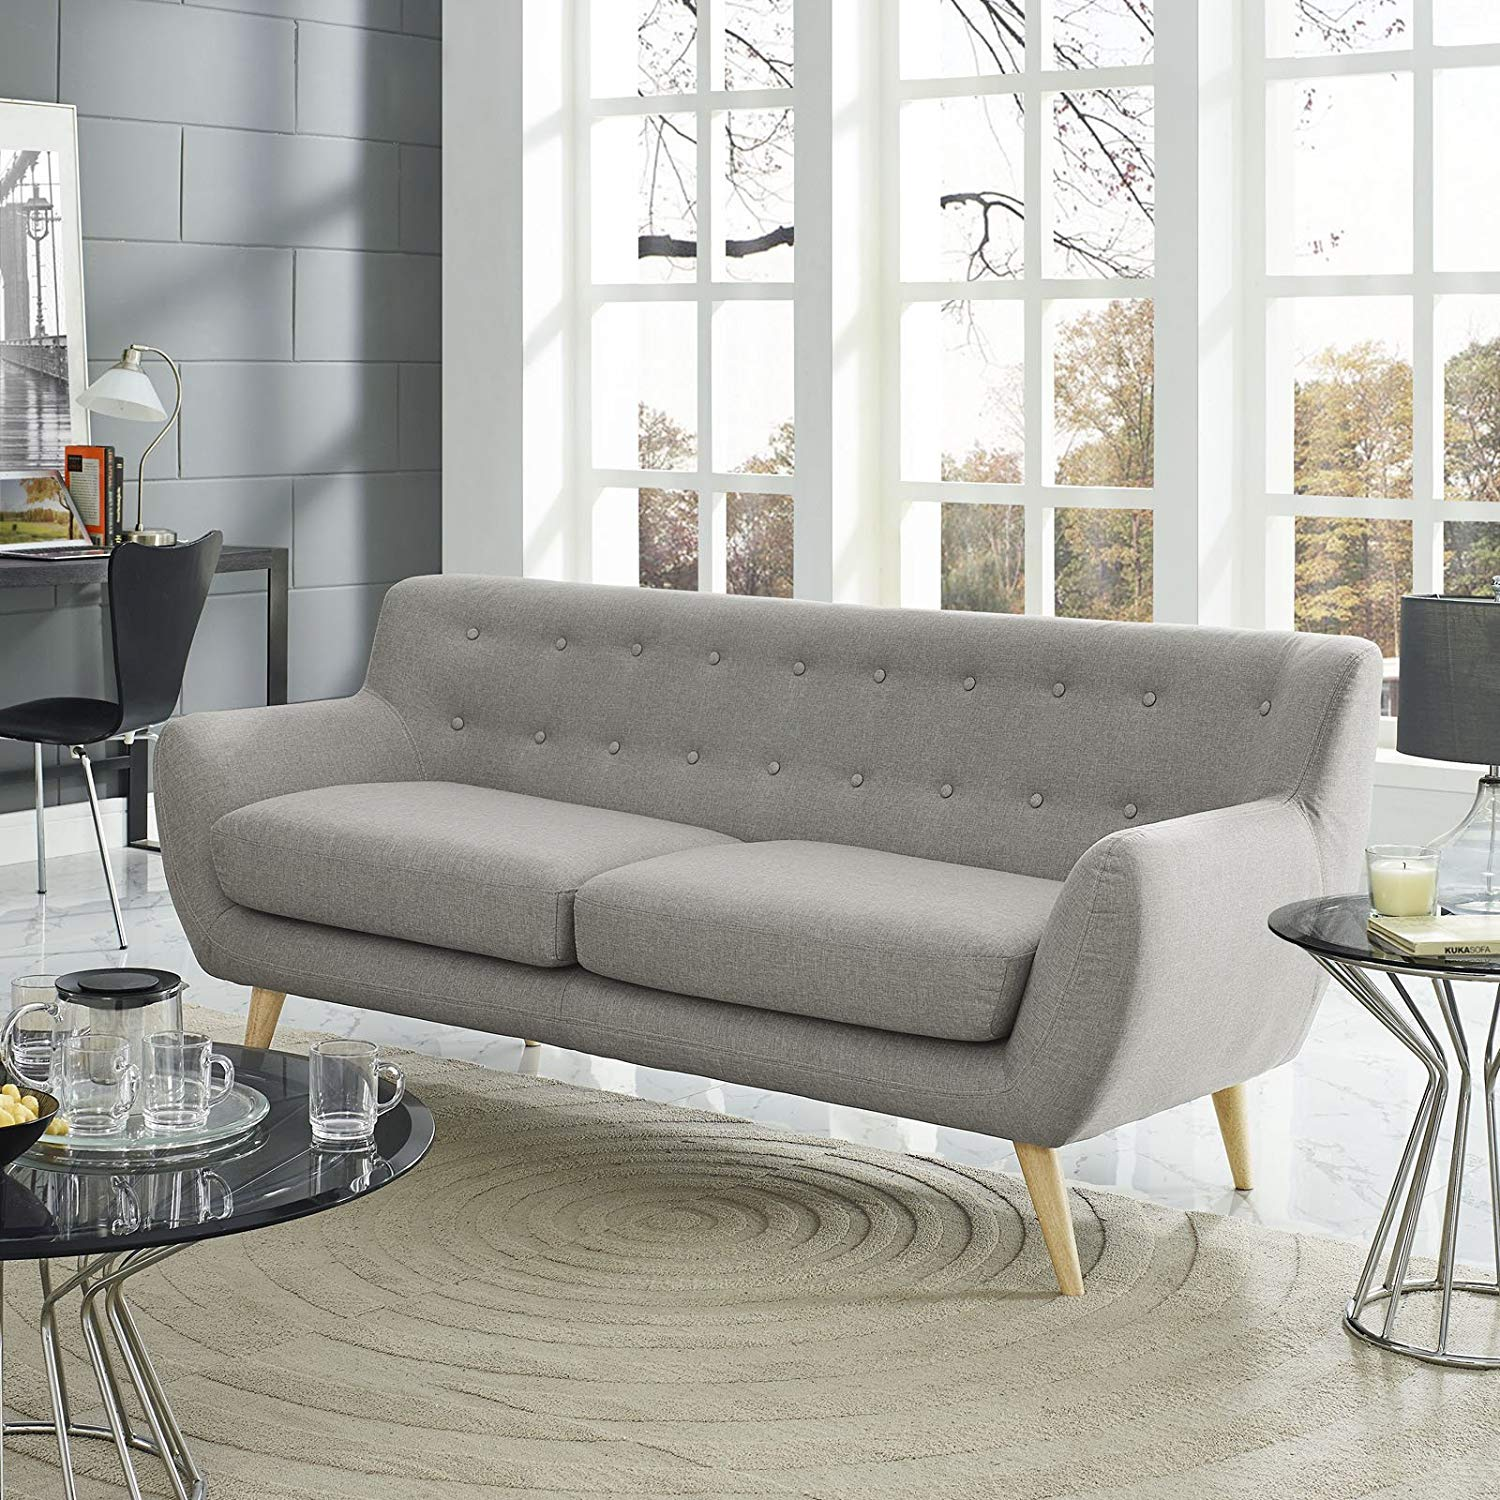 Modway Remark Sofa Top 10 Sofas for Sale Furniture Stores